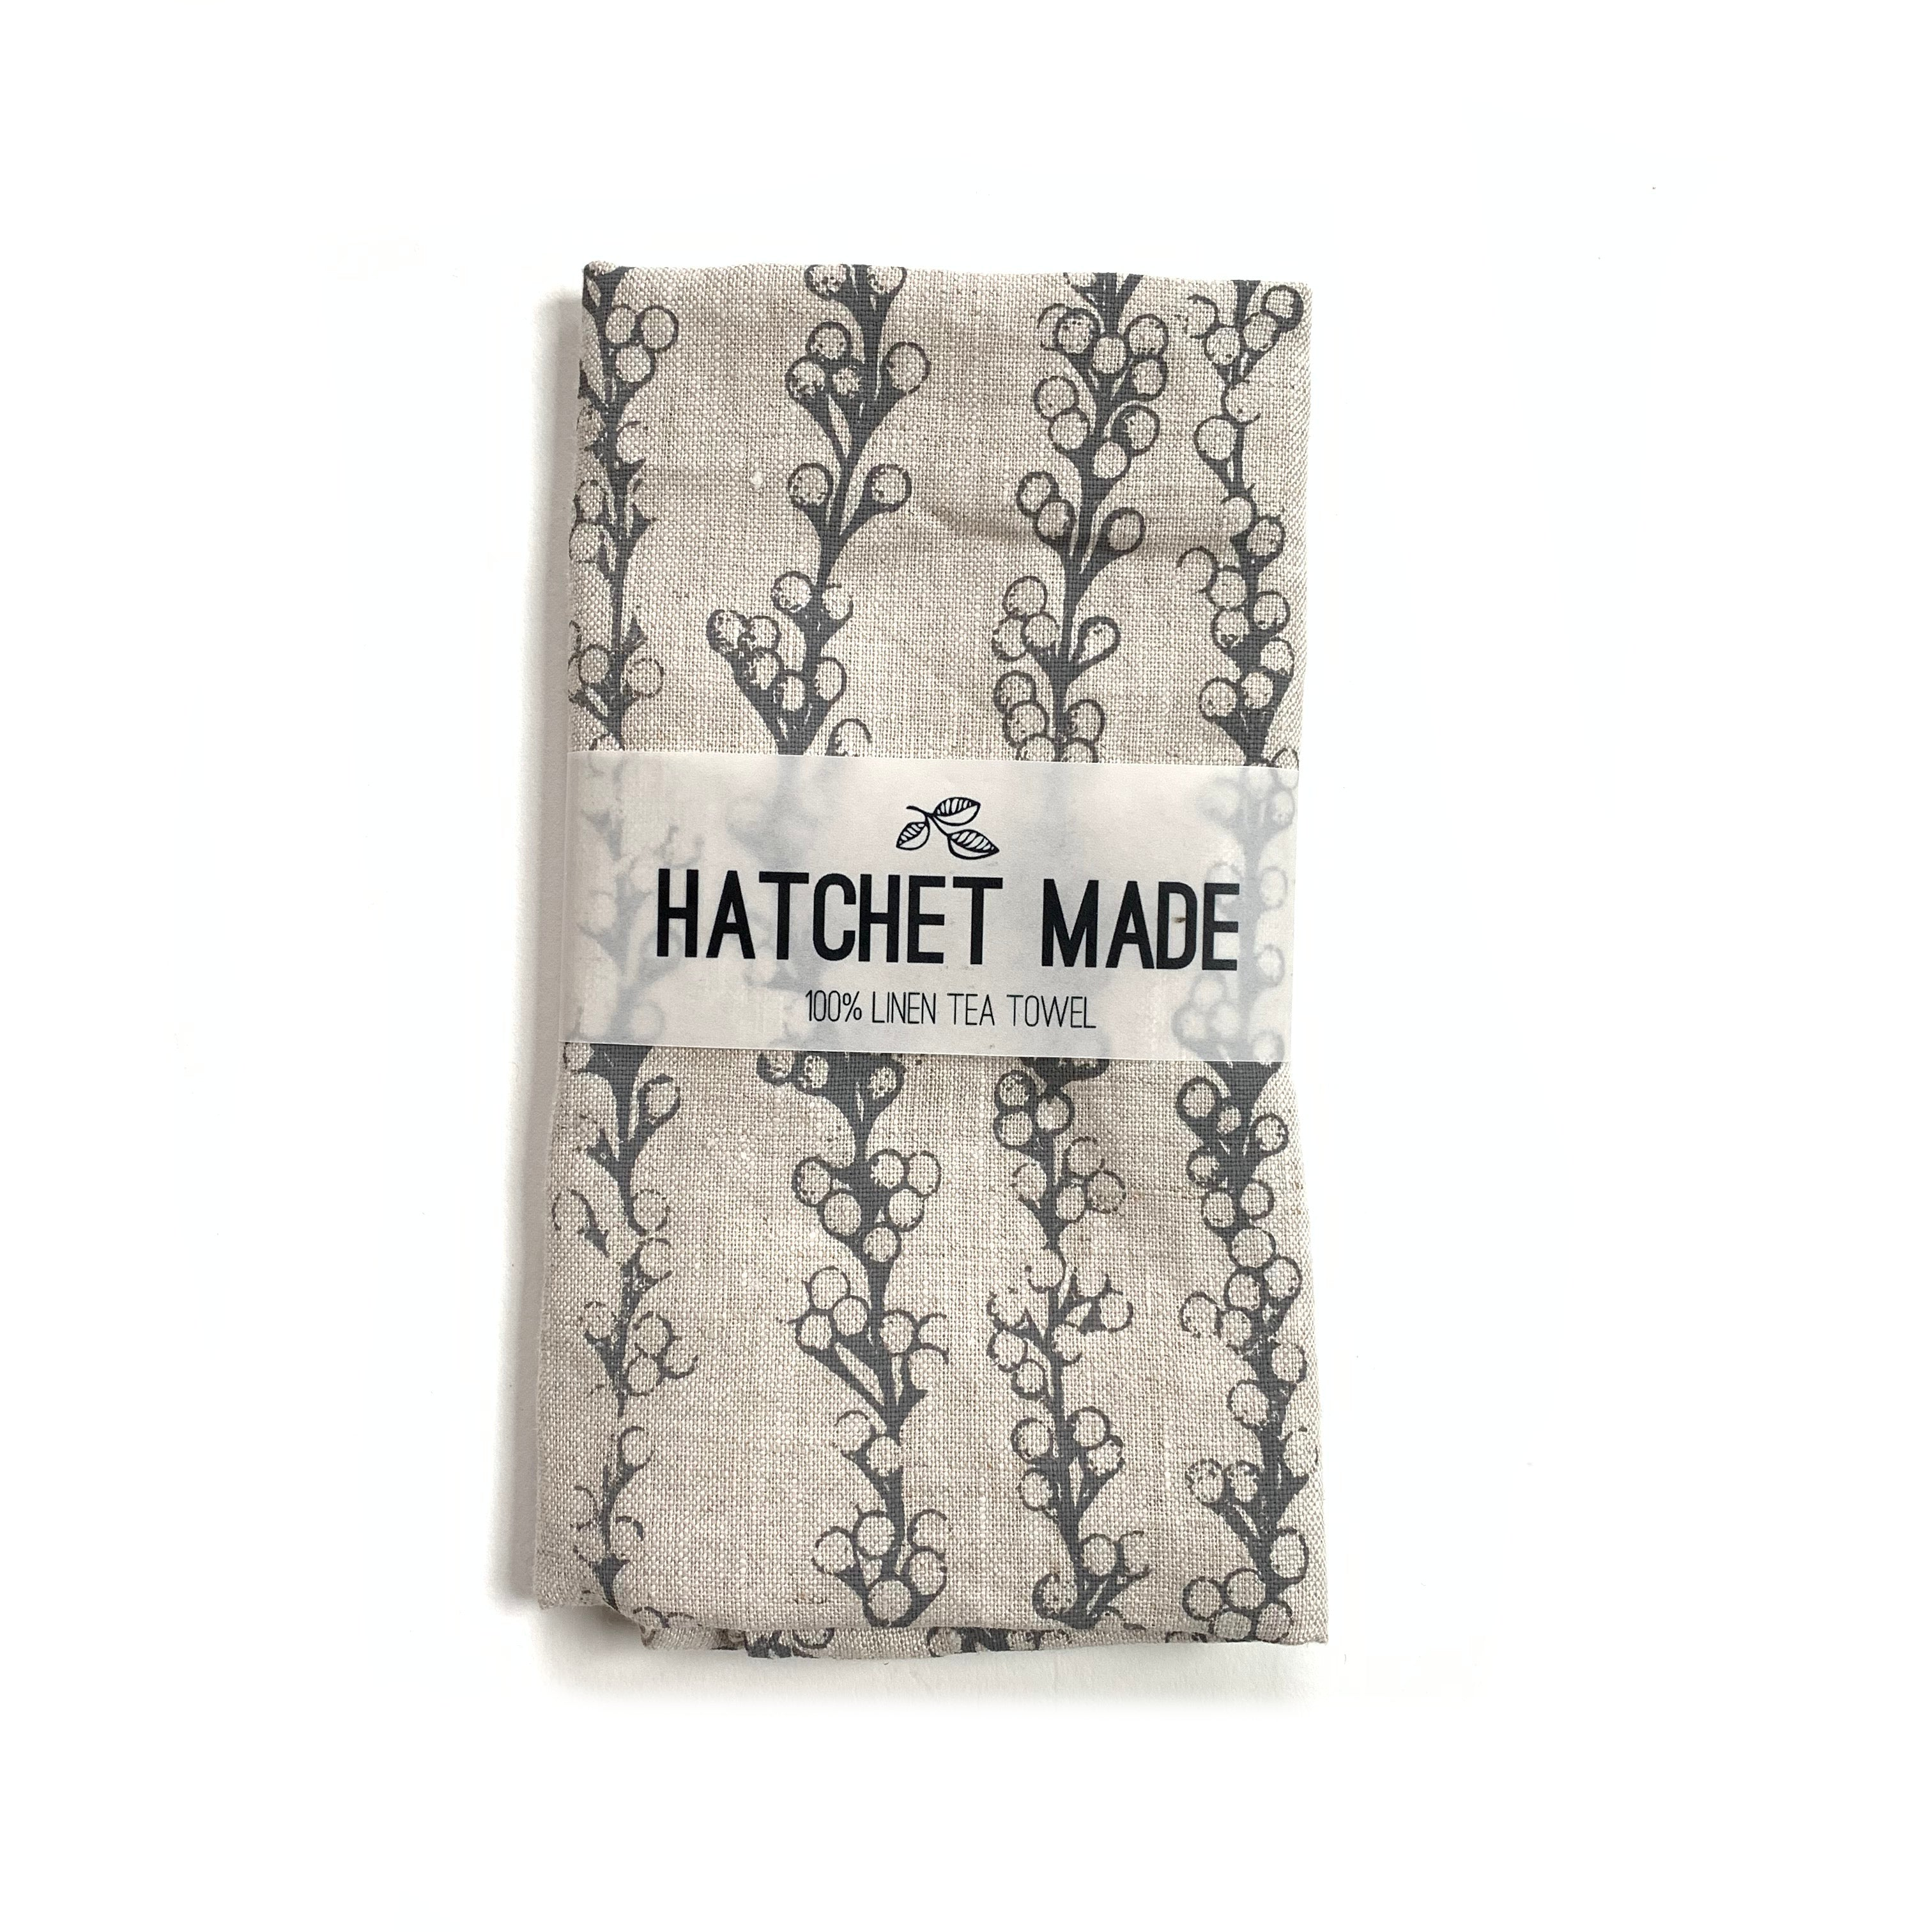 Linen Tea Towel - Sea Grapes - Hatchet Made